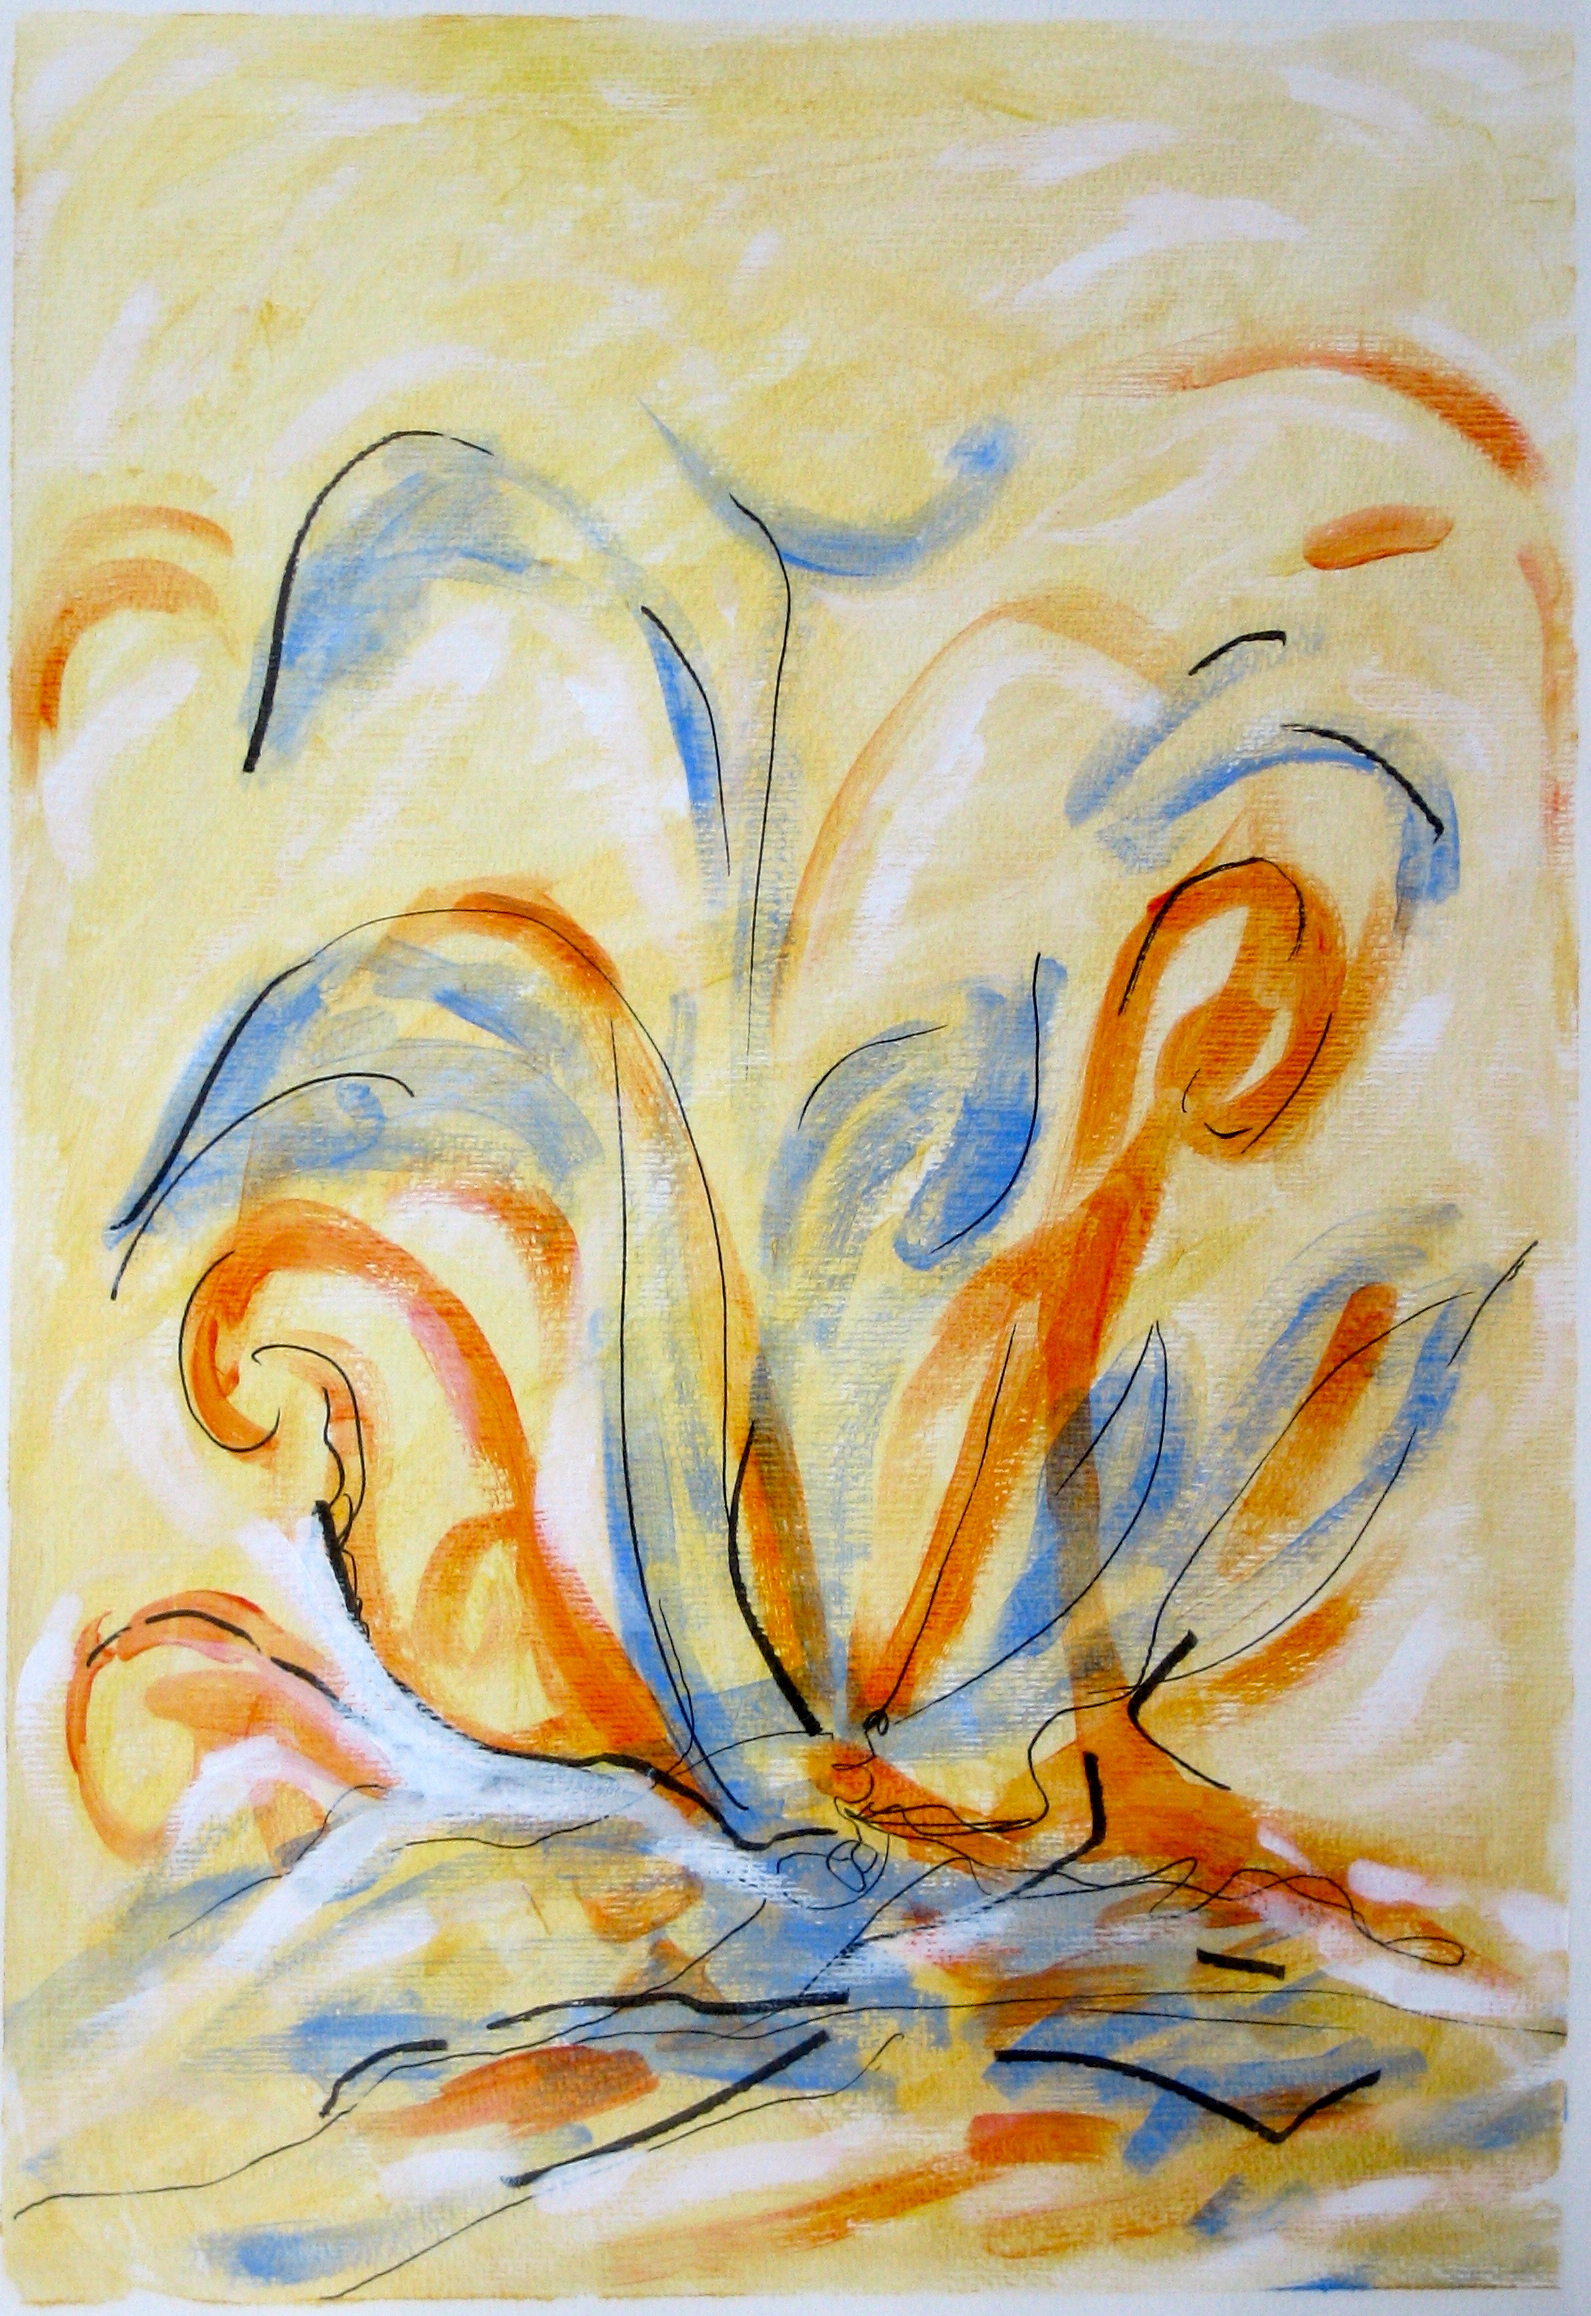 eight Transformation of Archetypal Plant  acrylic on paper 18in x 24in